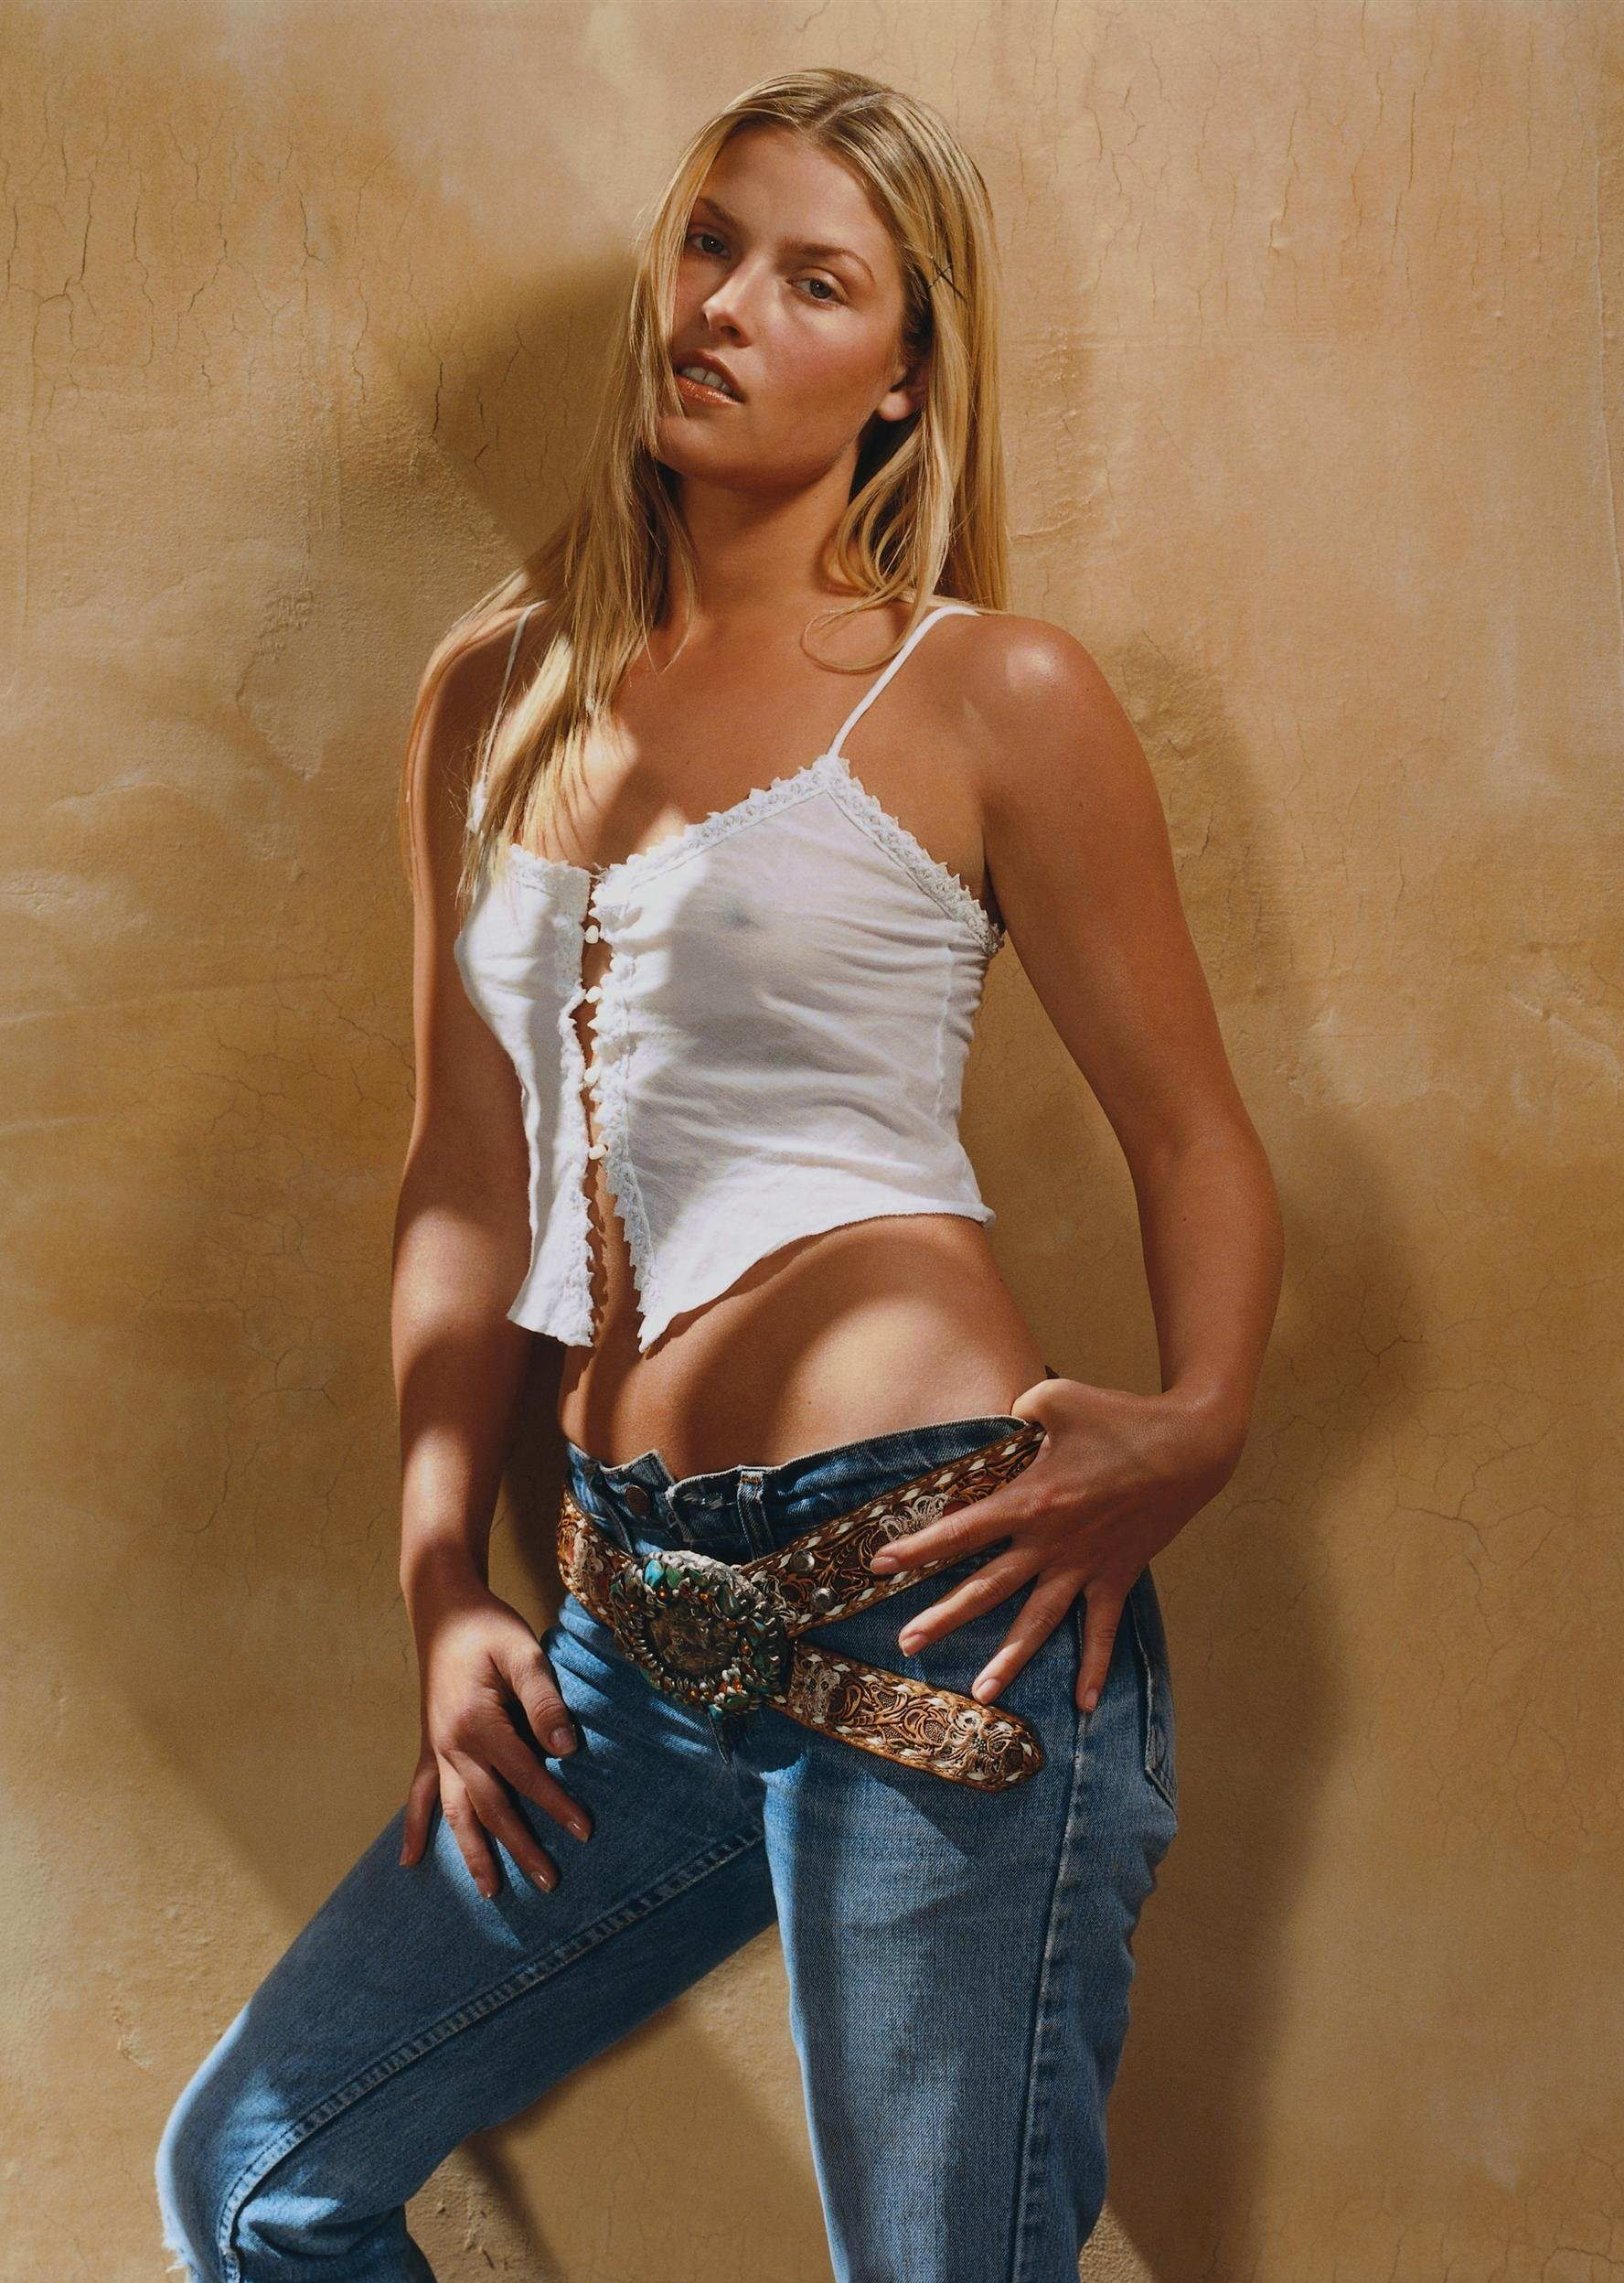 Fappening Ali Larter naked (35 foto and video), Tits, Fappening, Boobs, butt 2015